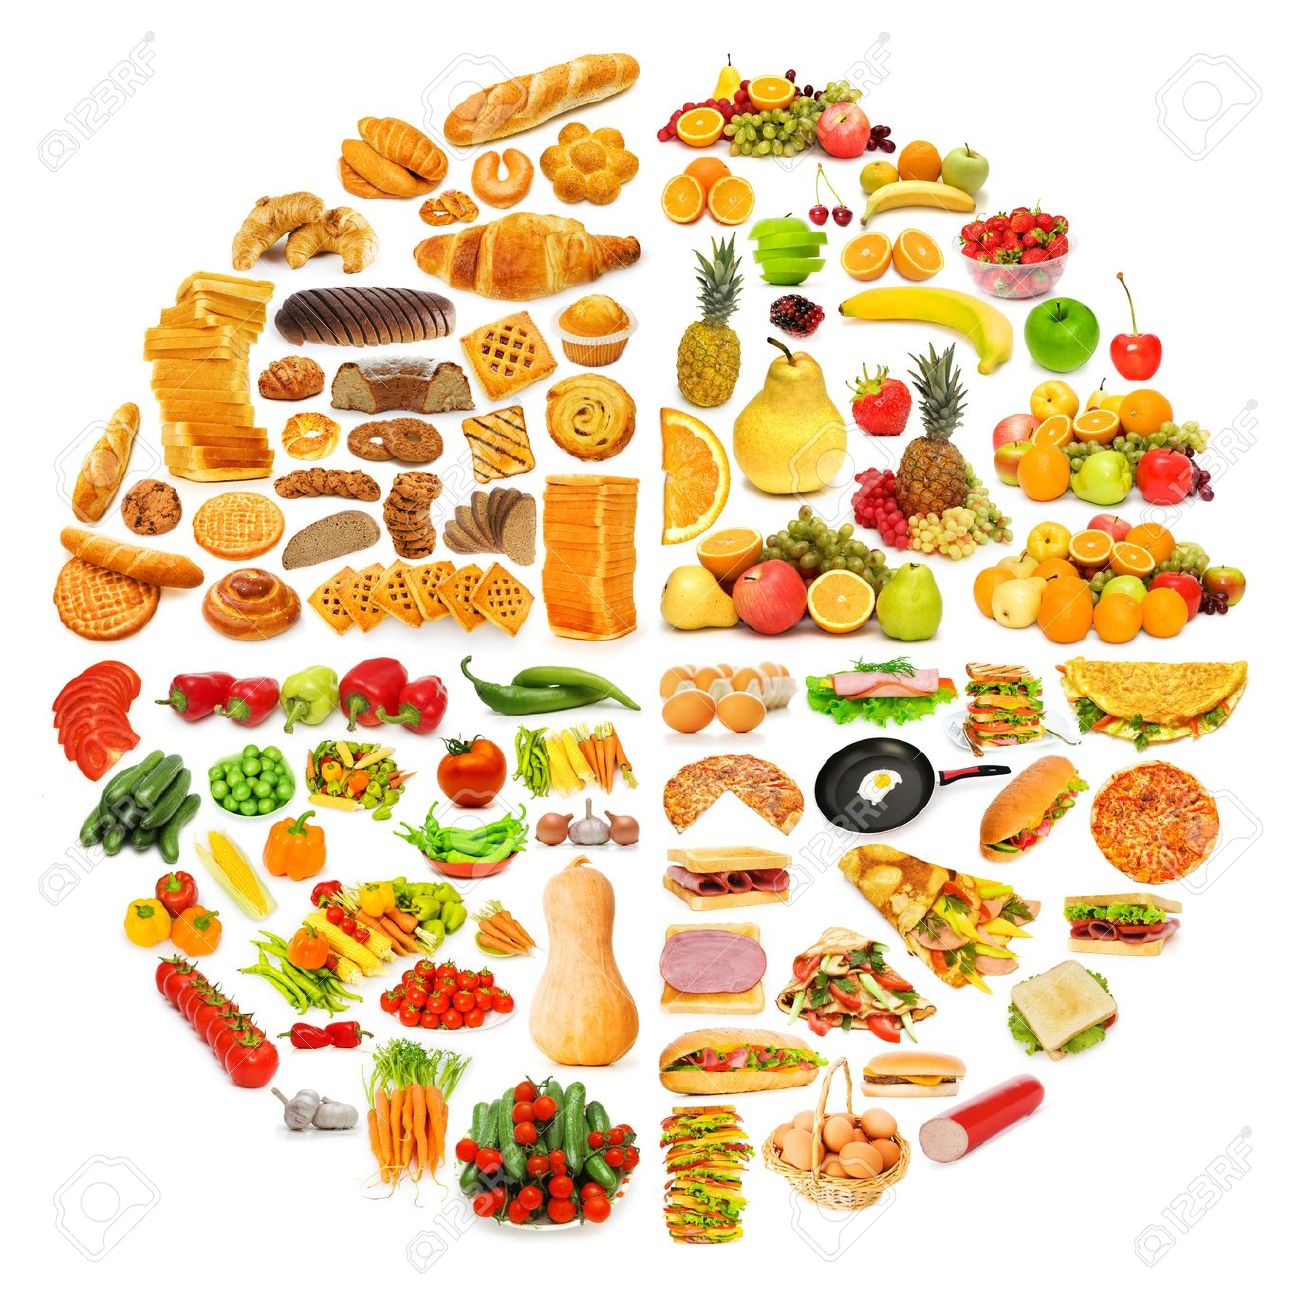 Foods with Carbohydrates Clip Art.